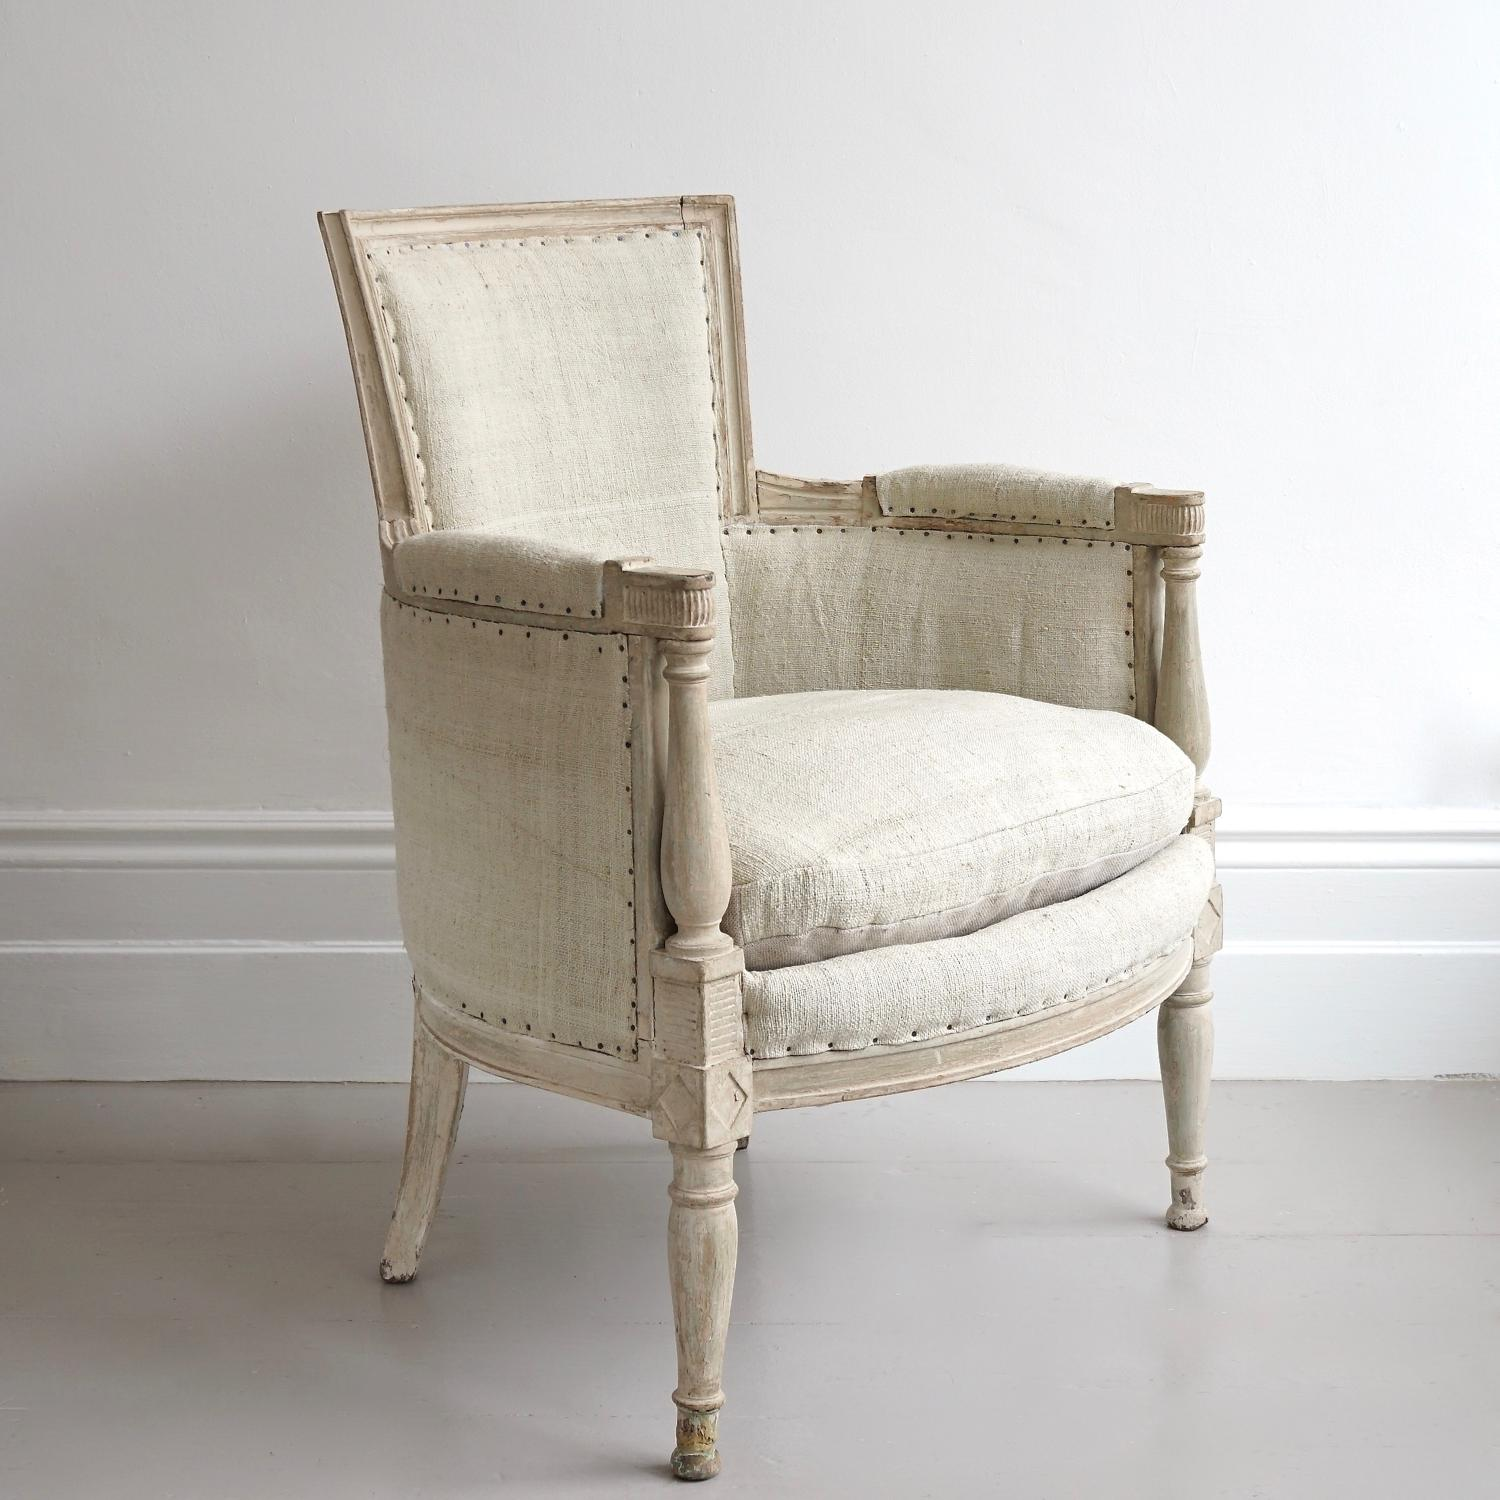 BEAUTIFUL DIRECTOIRE ARMCHAIR IN ORIGINAL PAINT